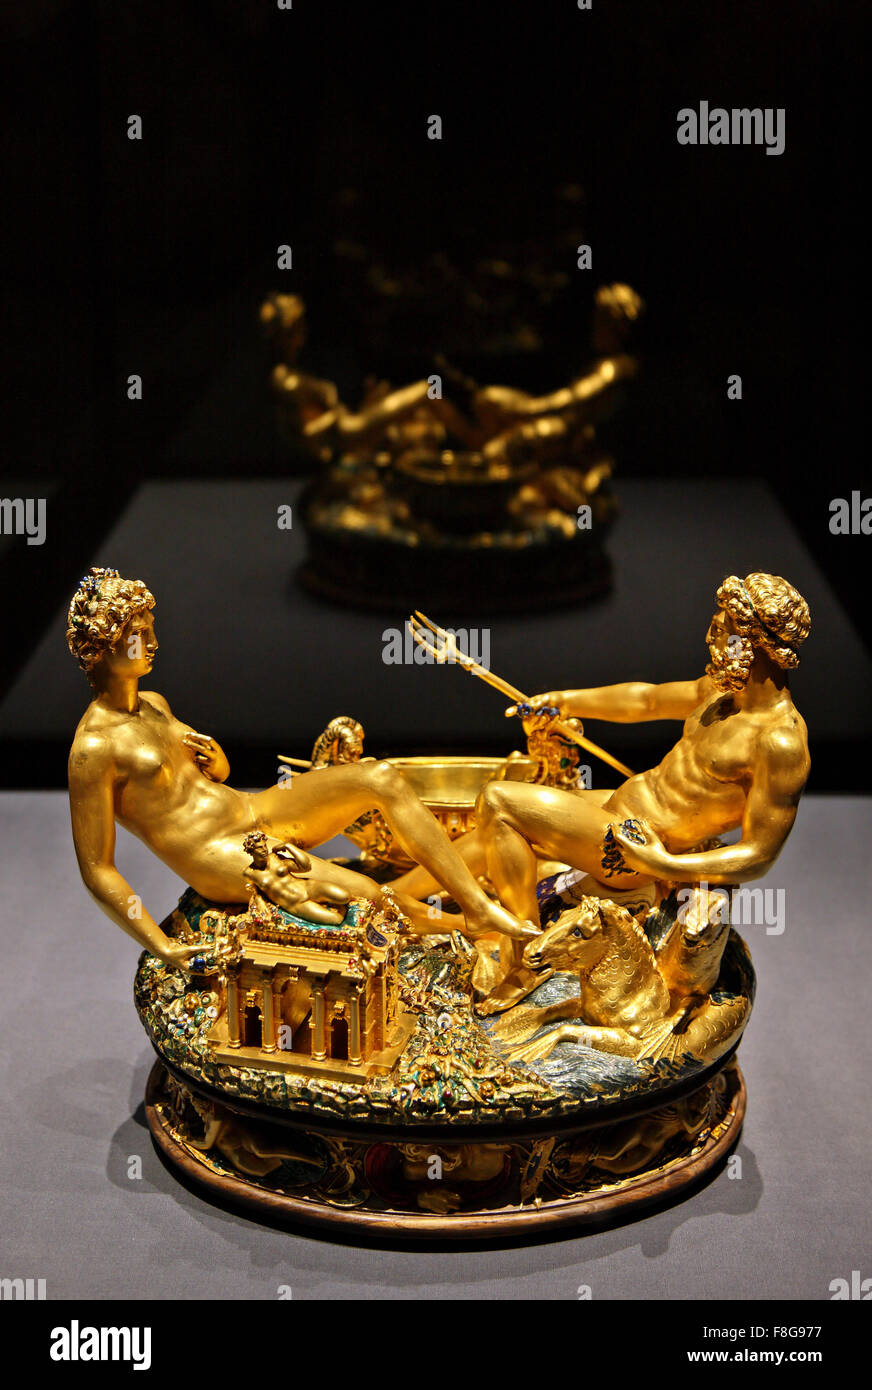 "The Cellini Salt Cellar (known as the ""Saliera"", Italian for salt cellar) in the Kunsthistorisches Museum (""Art Stock Photo"